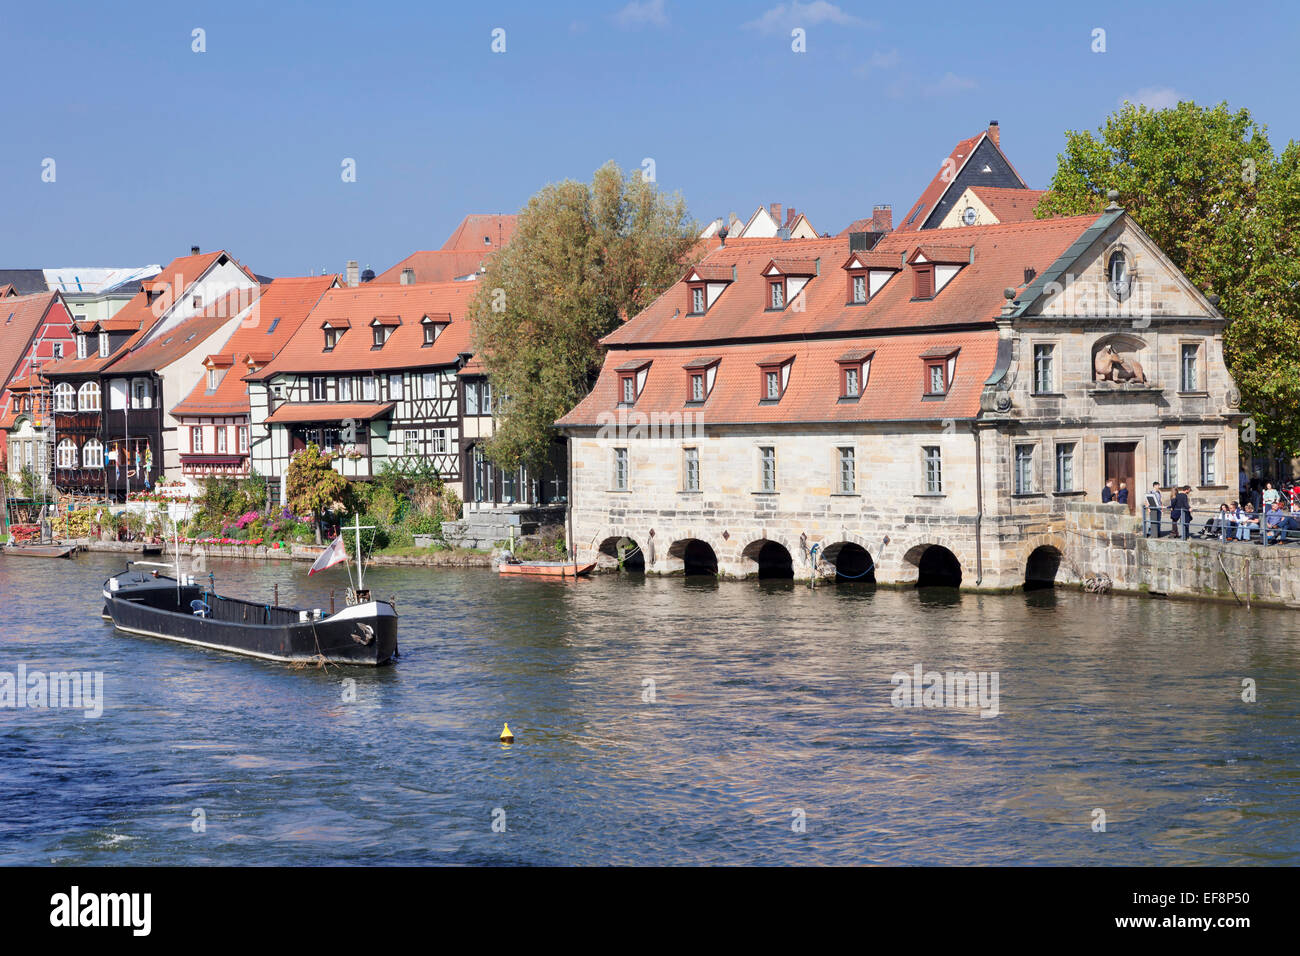 View across Regnitz river towards Little Venice with the old slaughter house, Bamberg, Franconia, Bavaria, Germany - Stock Image